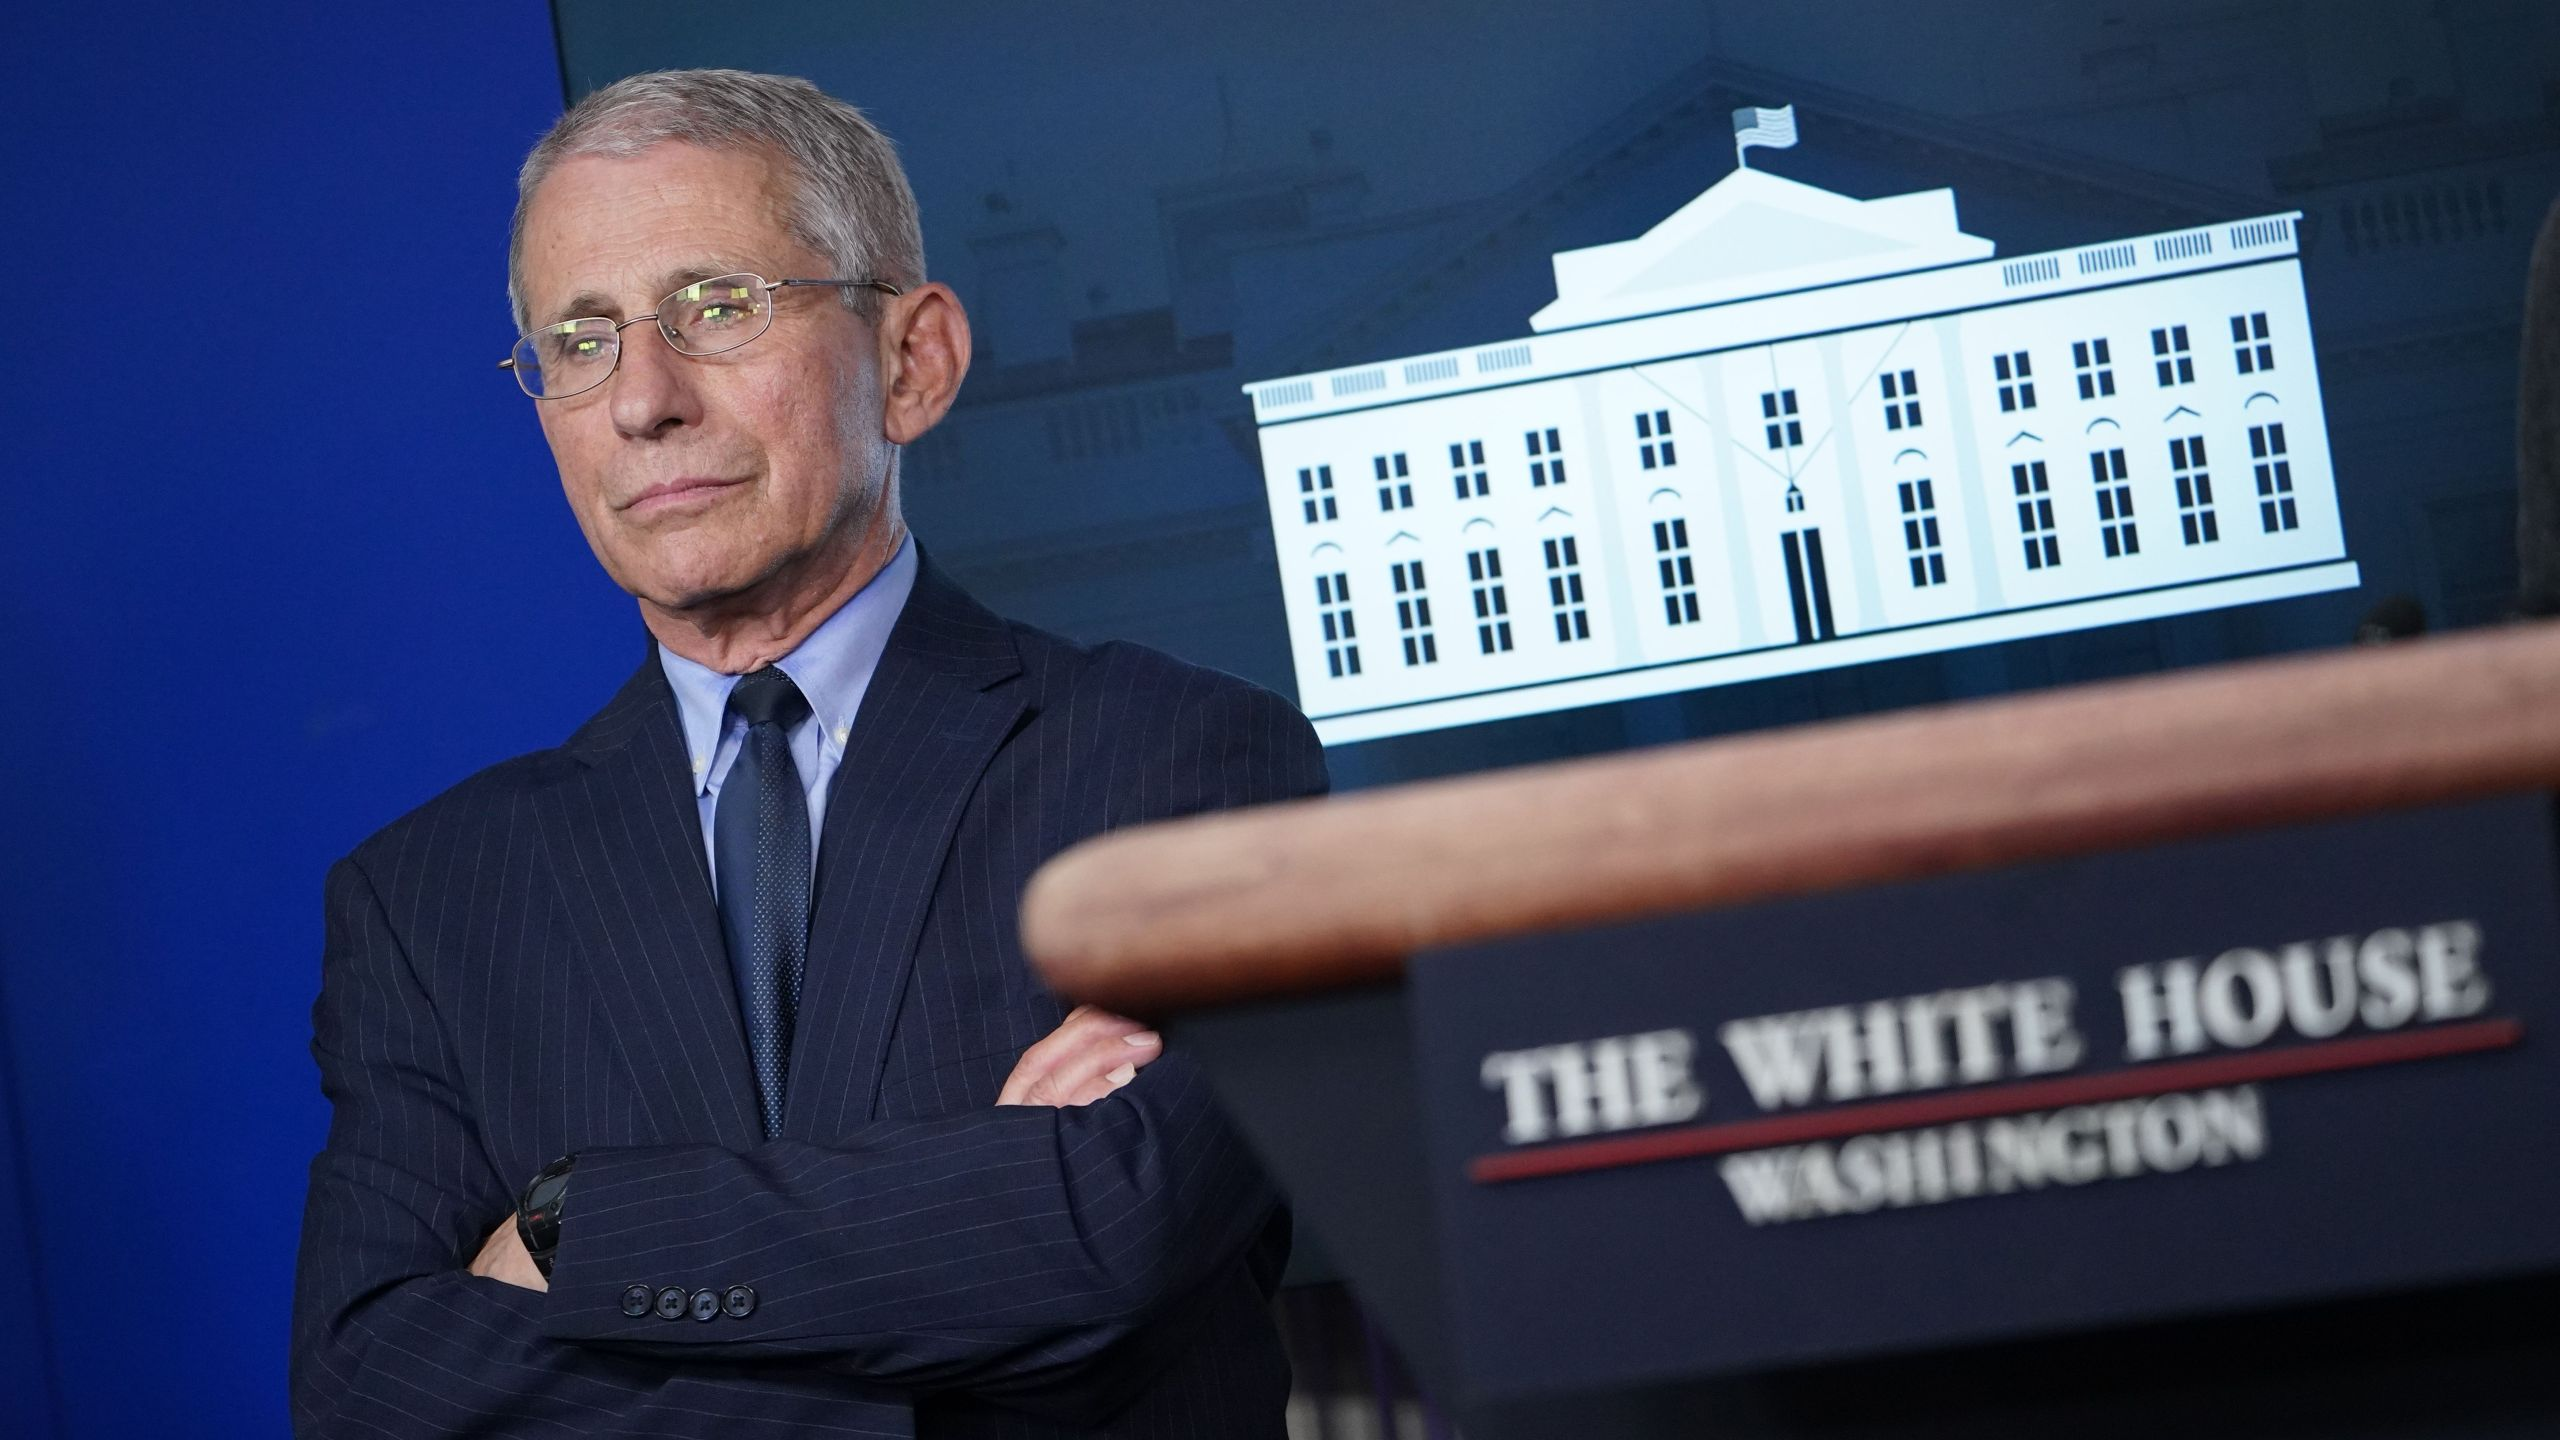 Director of the National Institute of Allergy and Infectious Diseases Anthony Fauci looks on during the daily briefing on the novel coronavirus, COVID-19, in the Brady Briefing Room at the White House on April 1, 2020, in Washington, DC. (MANDEL NGAN/AFP via Getty Images)